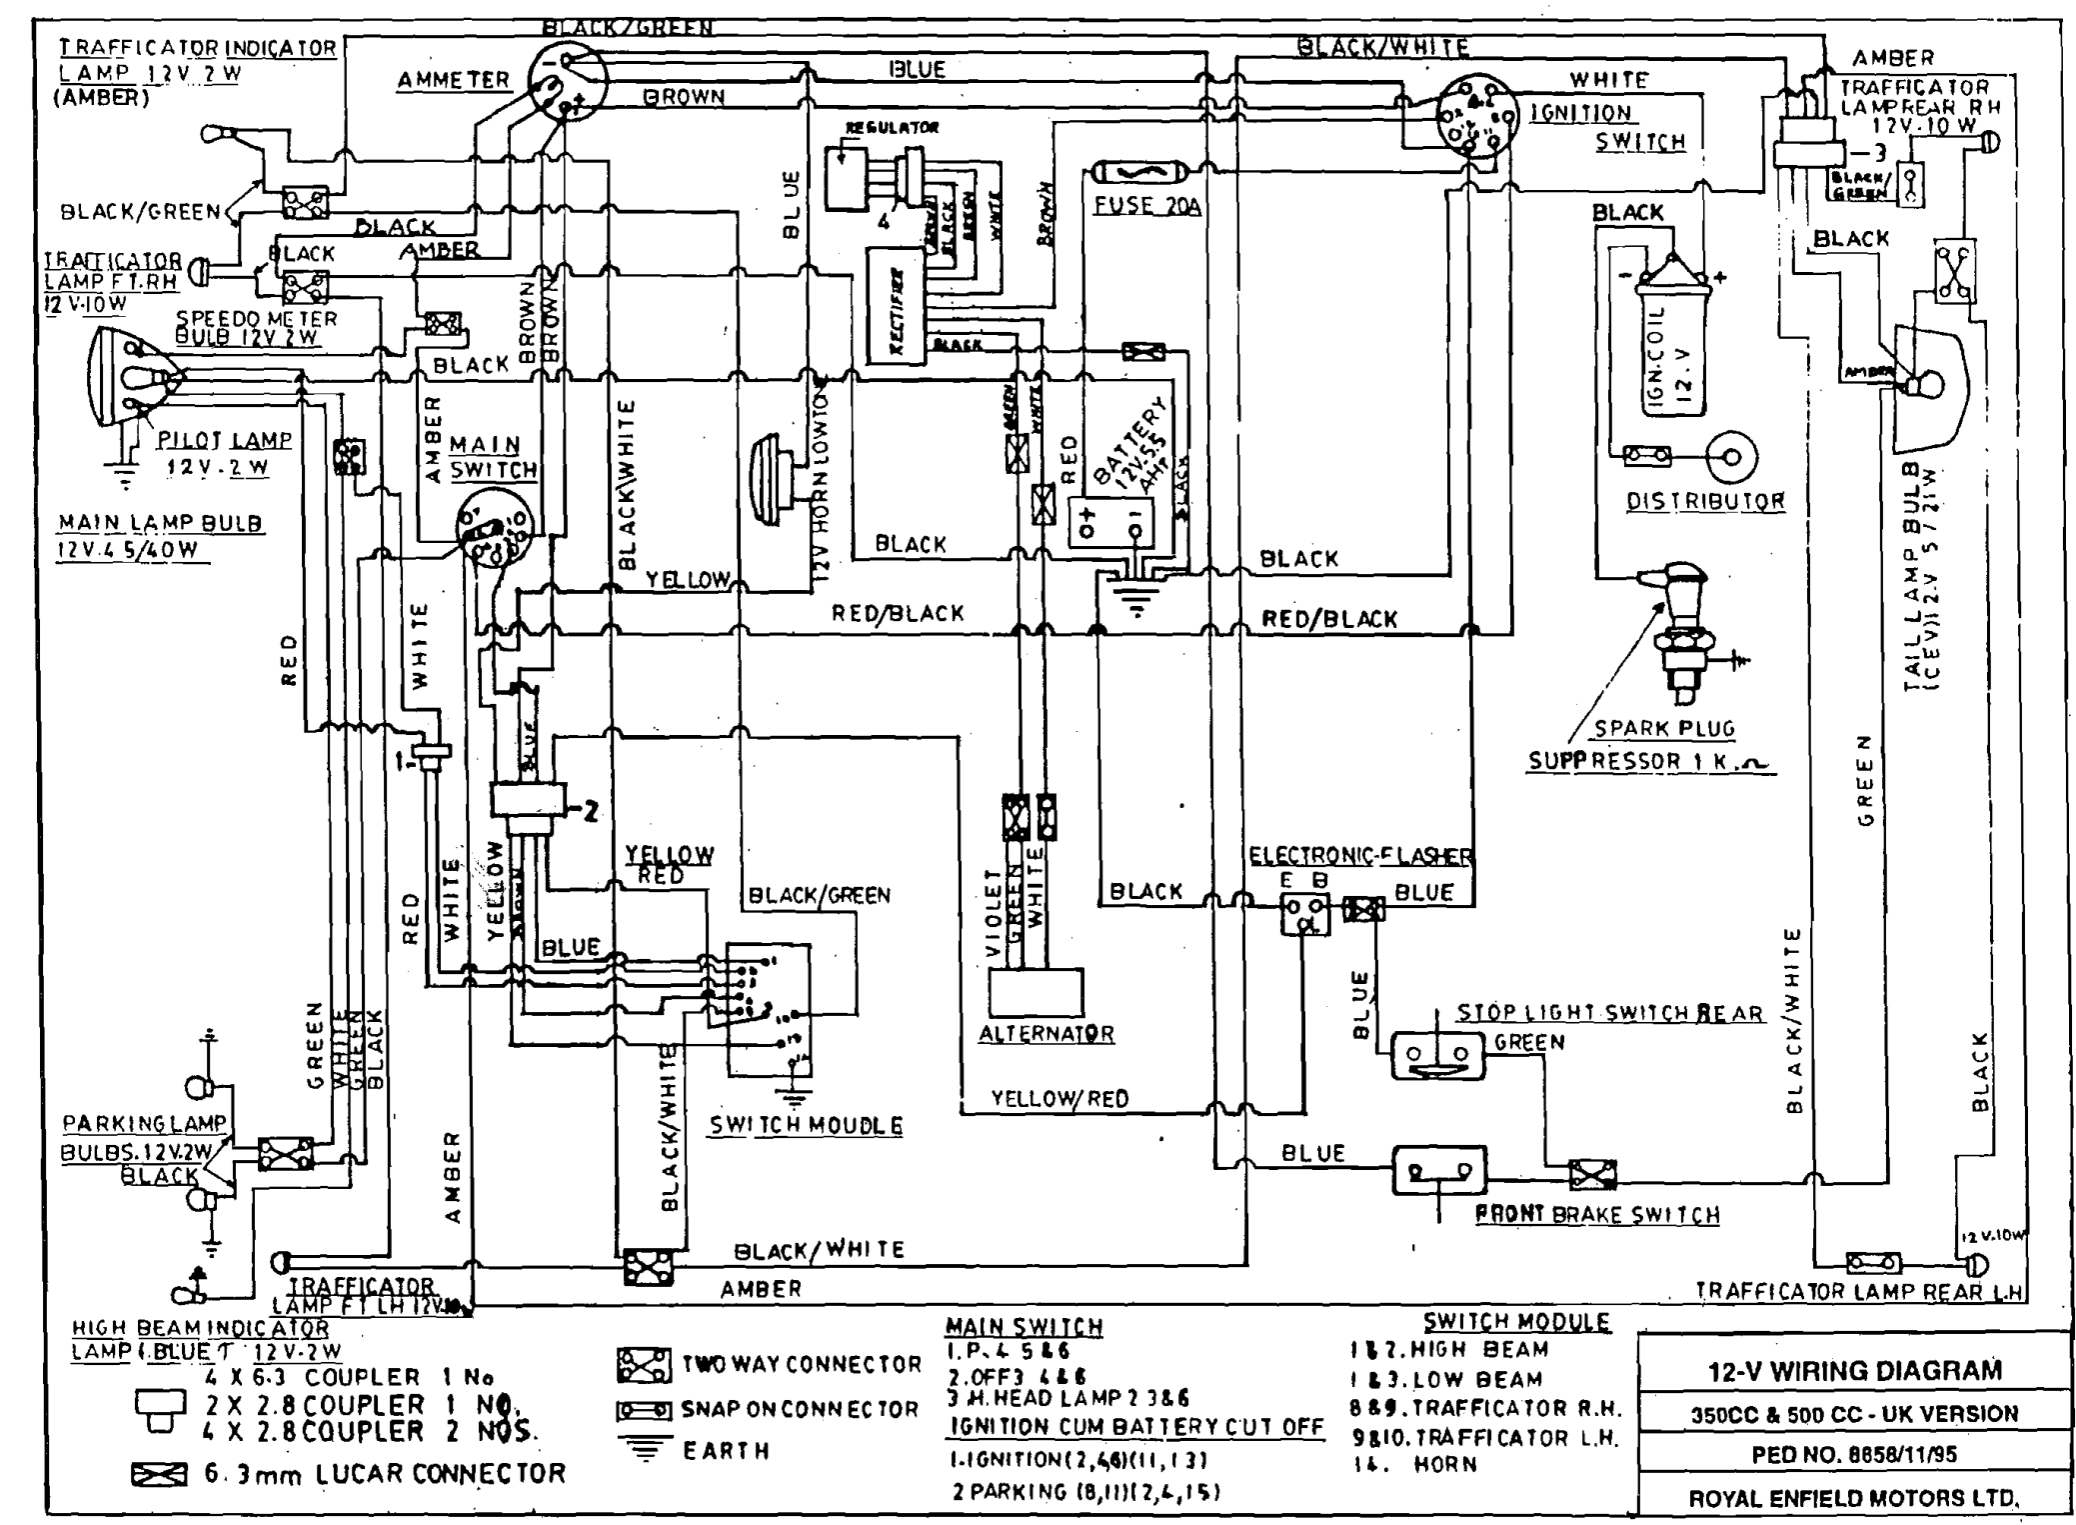 """Dan's Motorcycle """"various Wiring Systems And Diagrams"""" - 12 Volt Wiring Diagram"""